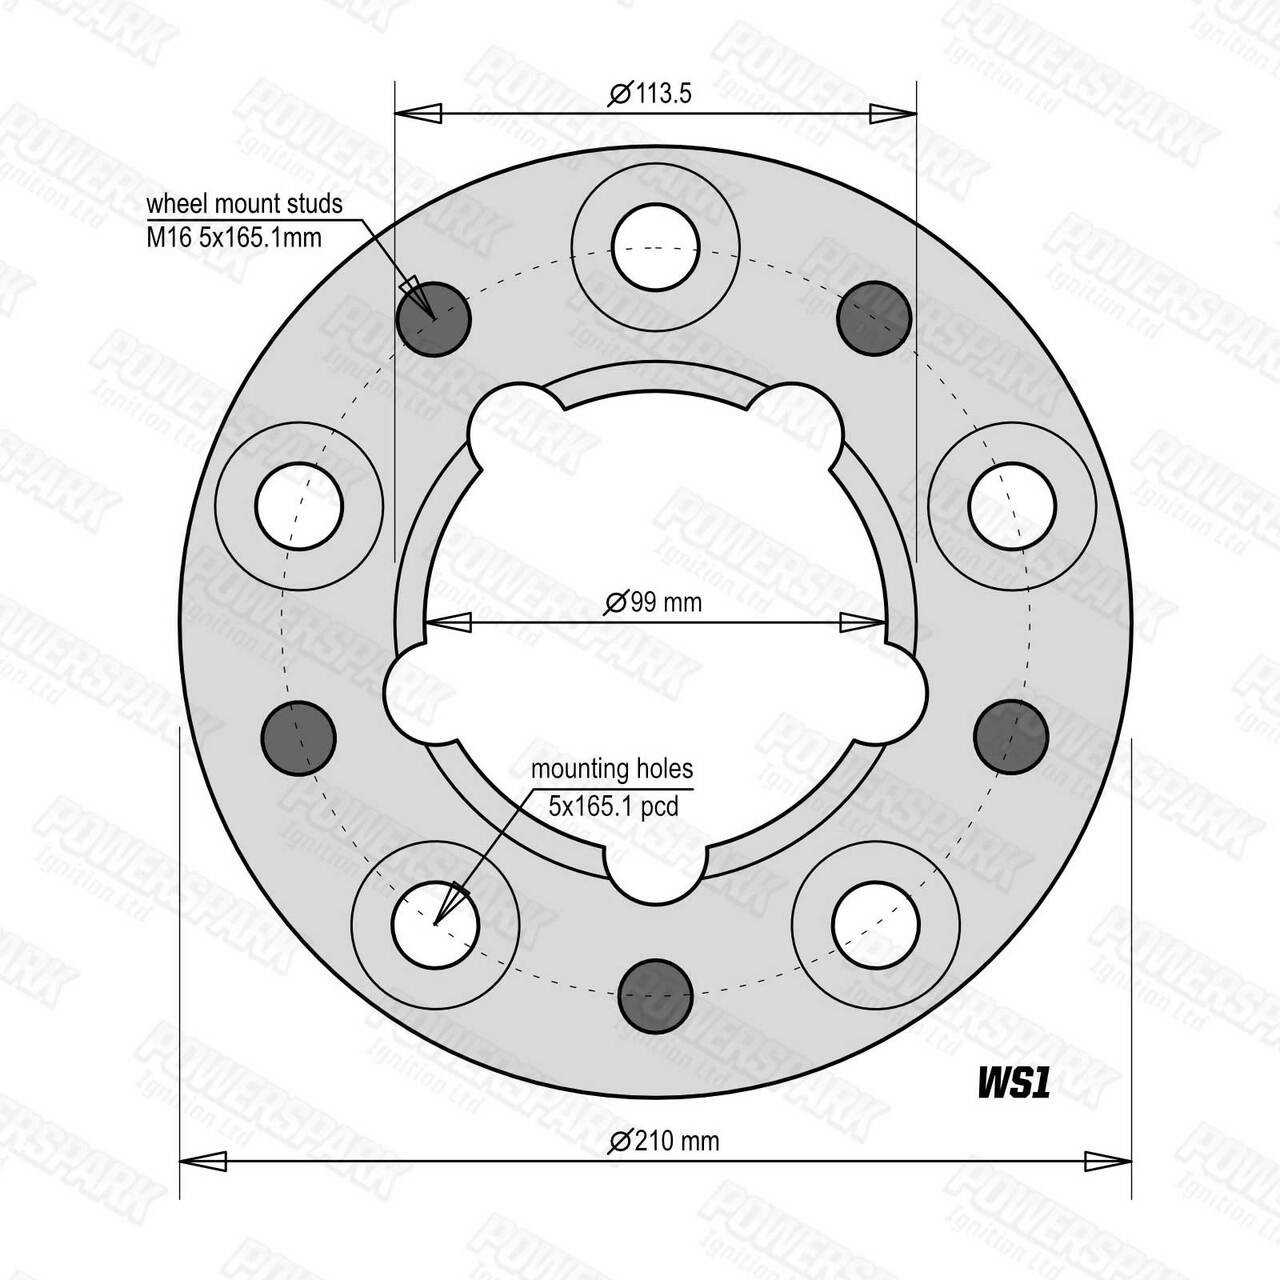 Bulldog Set of 4 Bulldog 30mm Wheel Spacers To Fit Land Rover Defender, Discovery 1 and Range Rover Classic